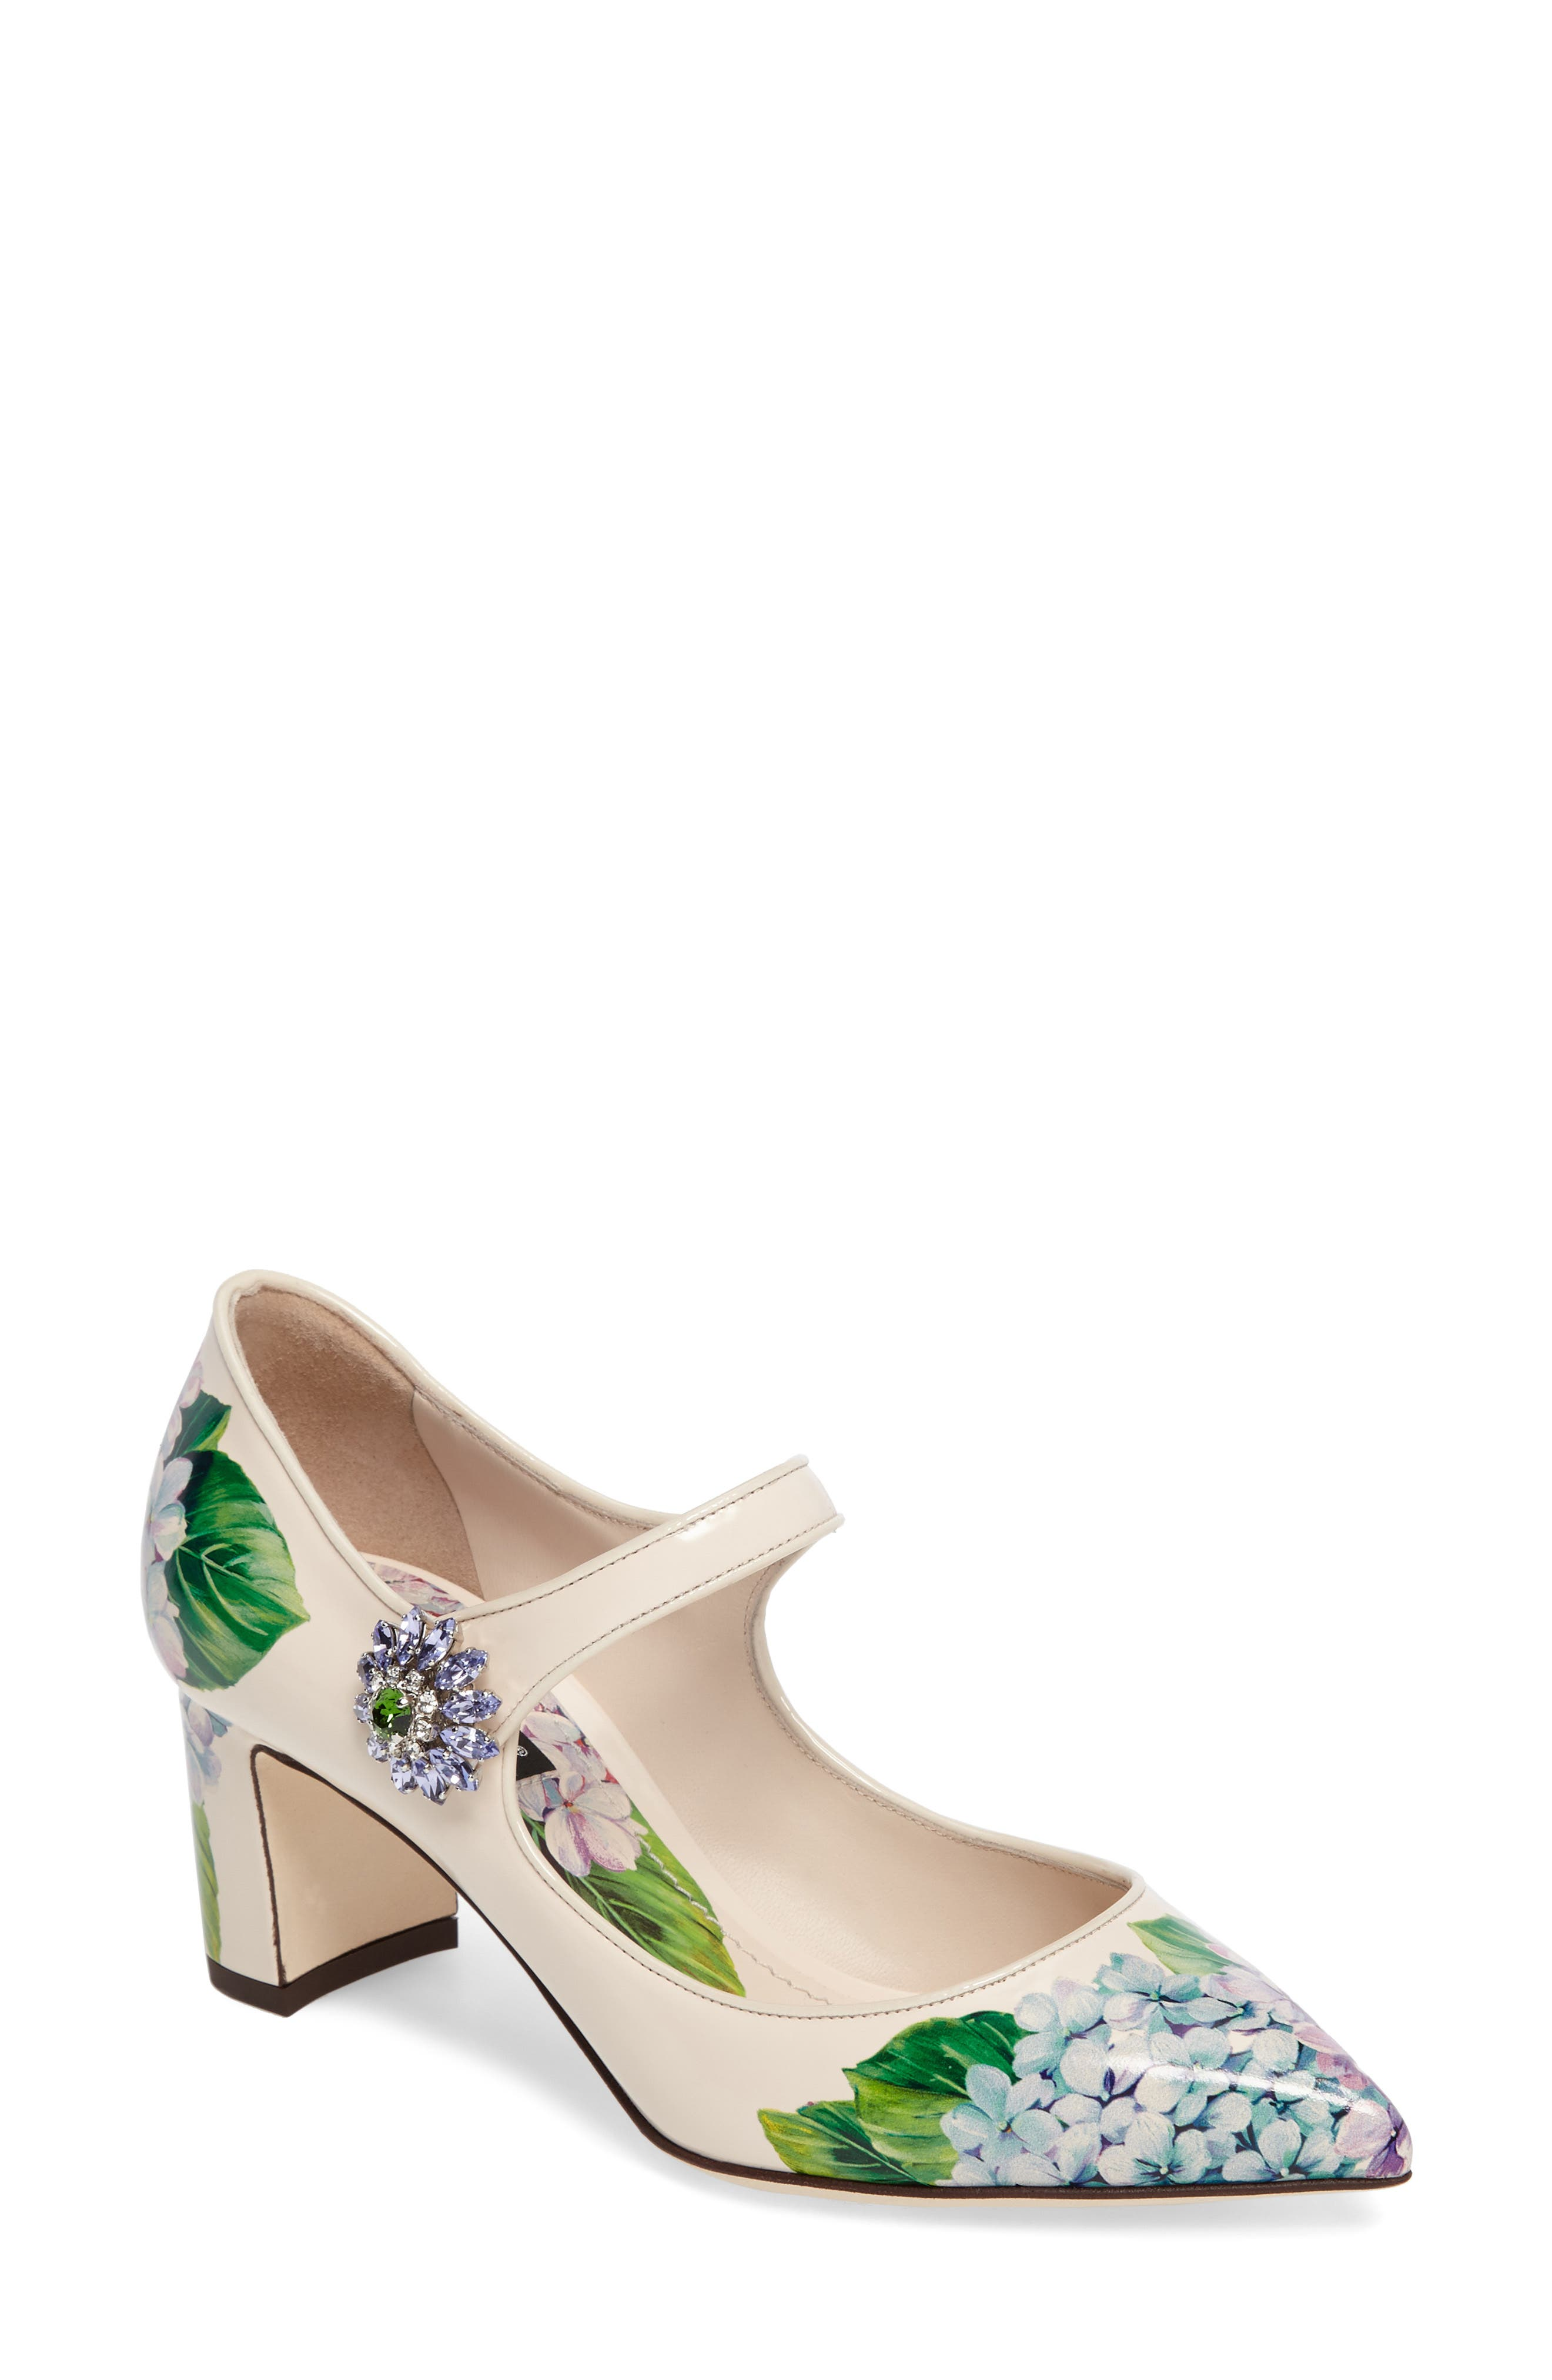 Hydrangea Mary Jane Pump,                             Main thumbnail 1, color,                             White Floral